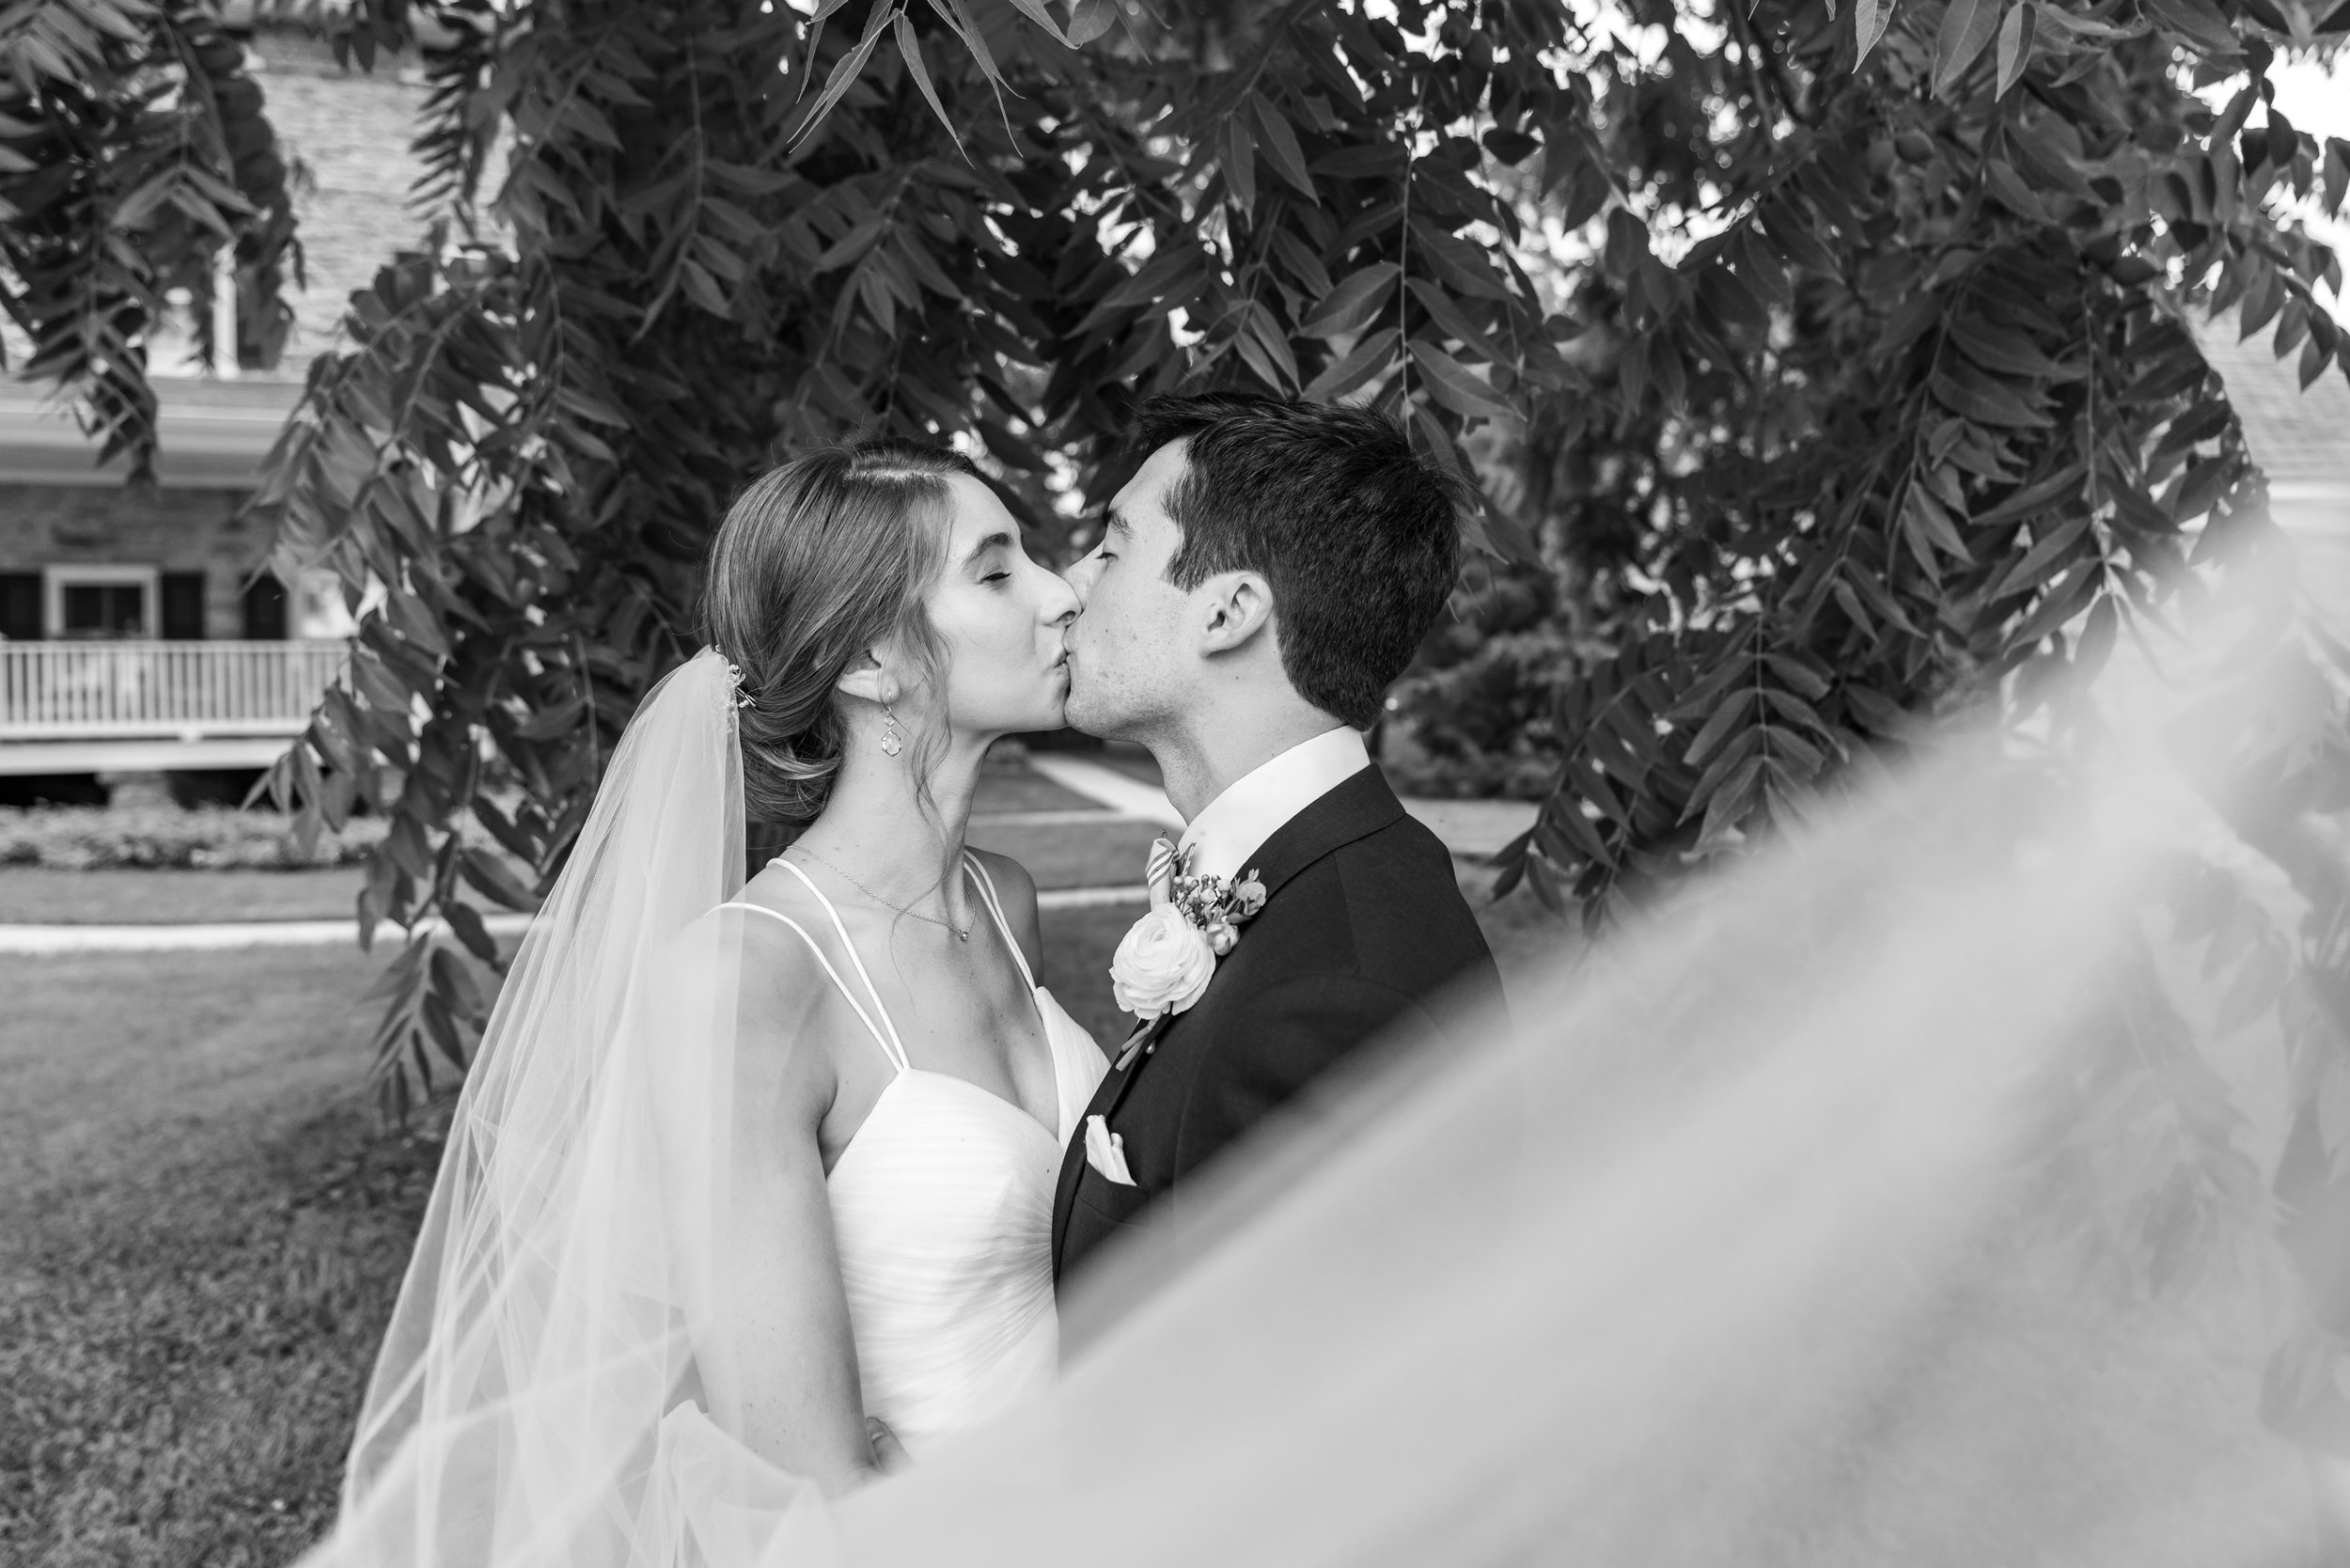 Bride and groom black and white photo kissing beneath veil from Lovely Bride